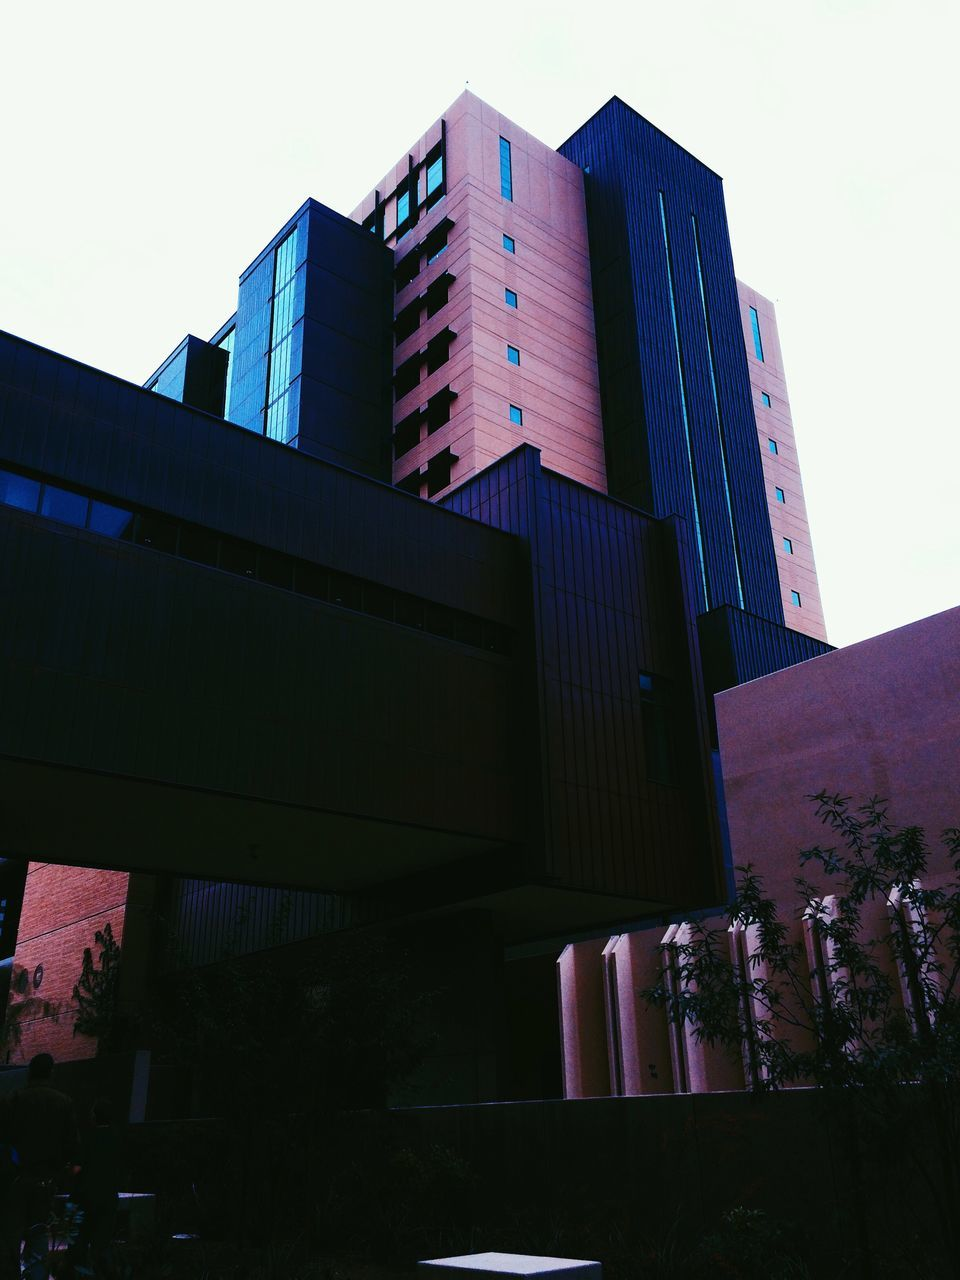 architecture, built structure, building exterior, low angle view, outdoors, day, no people, skyscraper, city, sky, clear sky, modern